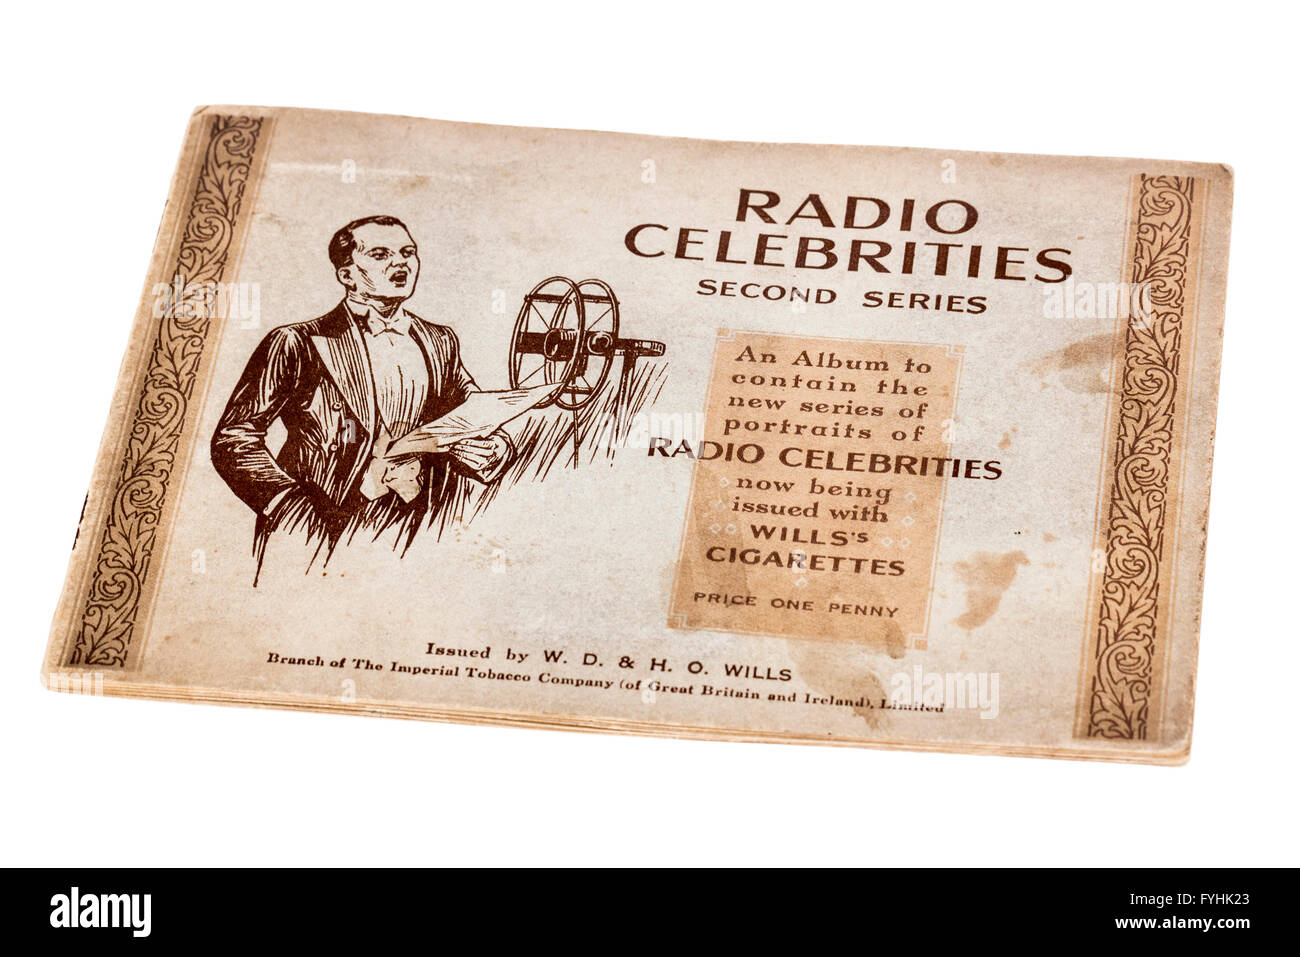 Wills cigarette card book of Radio Celebrities - Stock Image